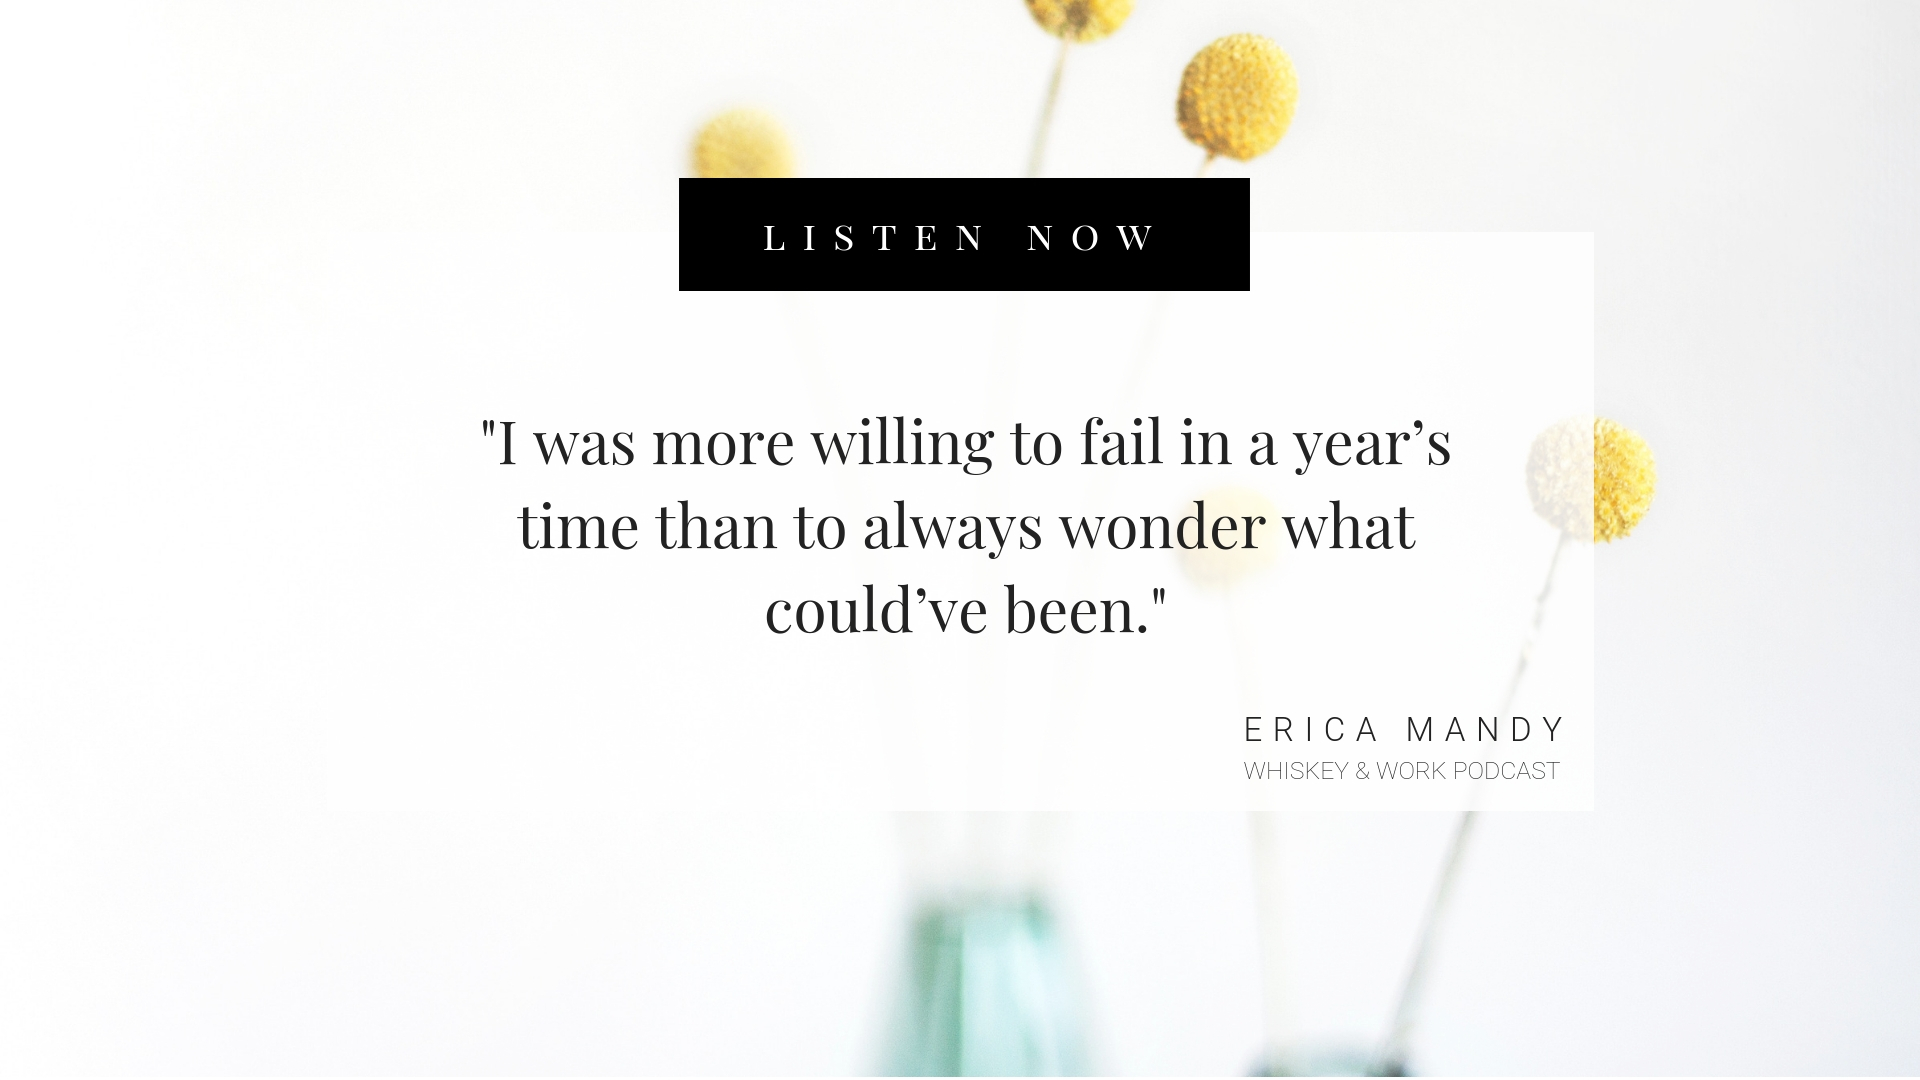 Erica Mandy Whiskey & Work Podcast with Kelsey Murphy